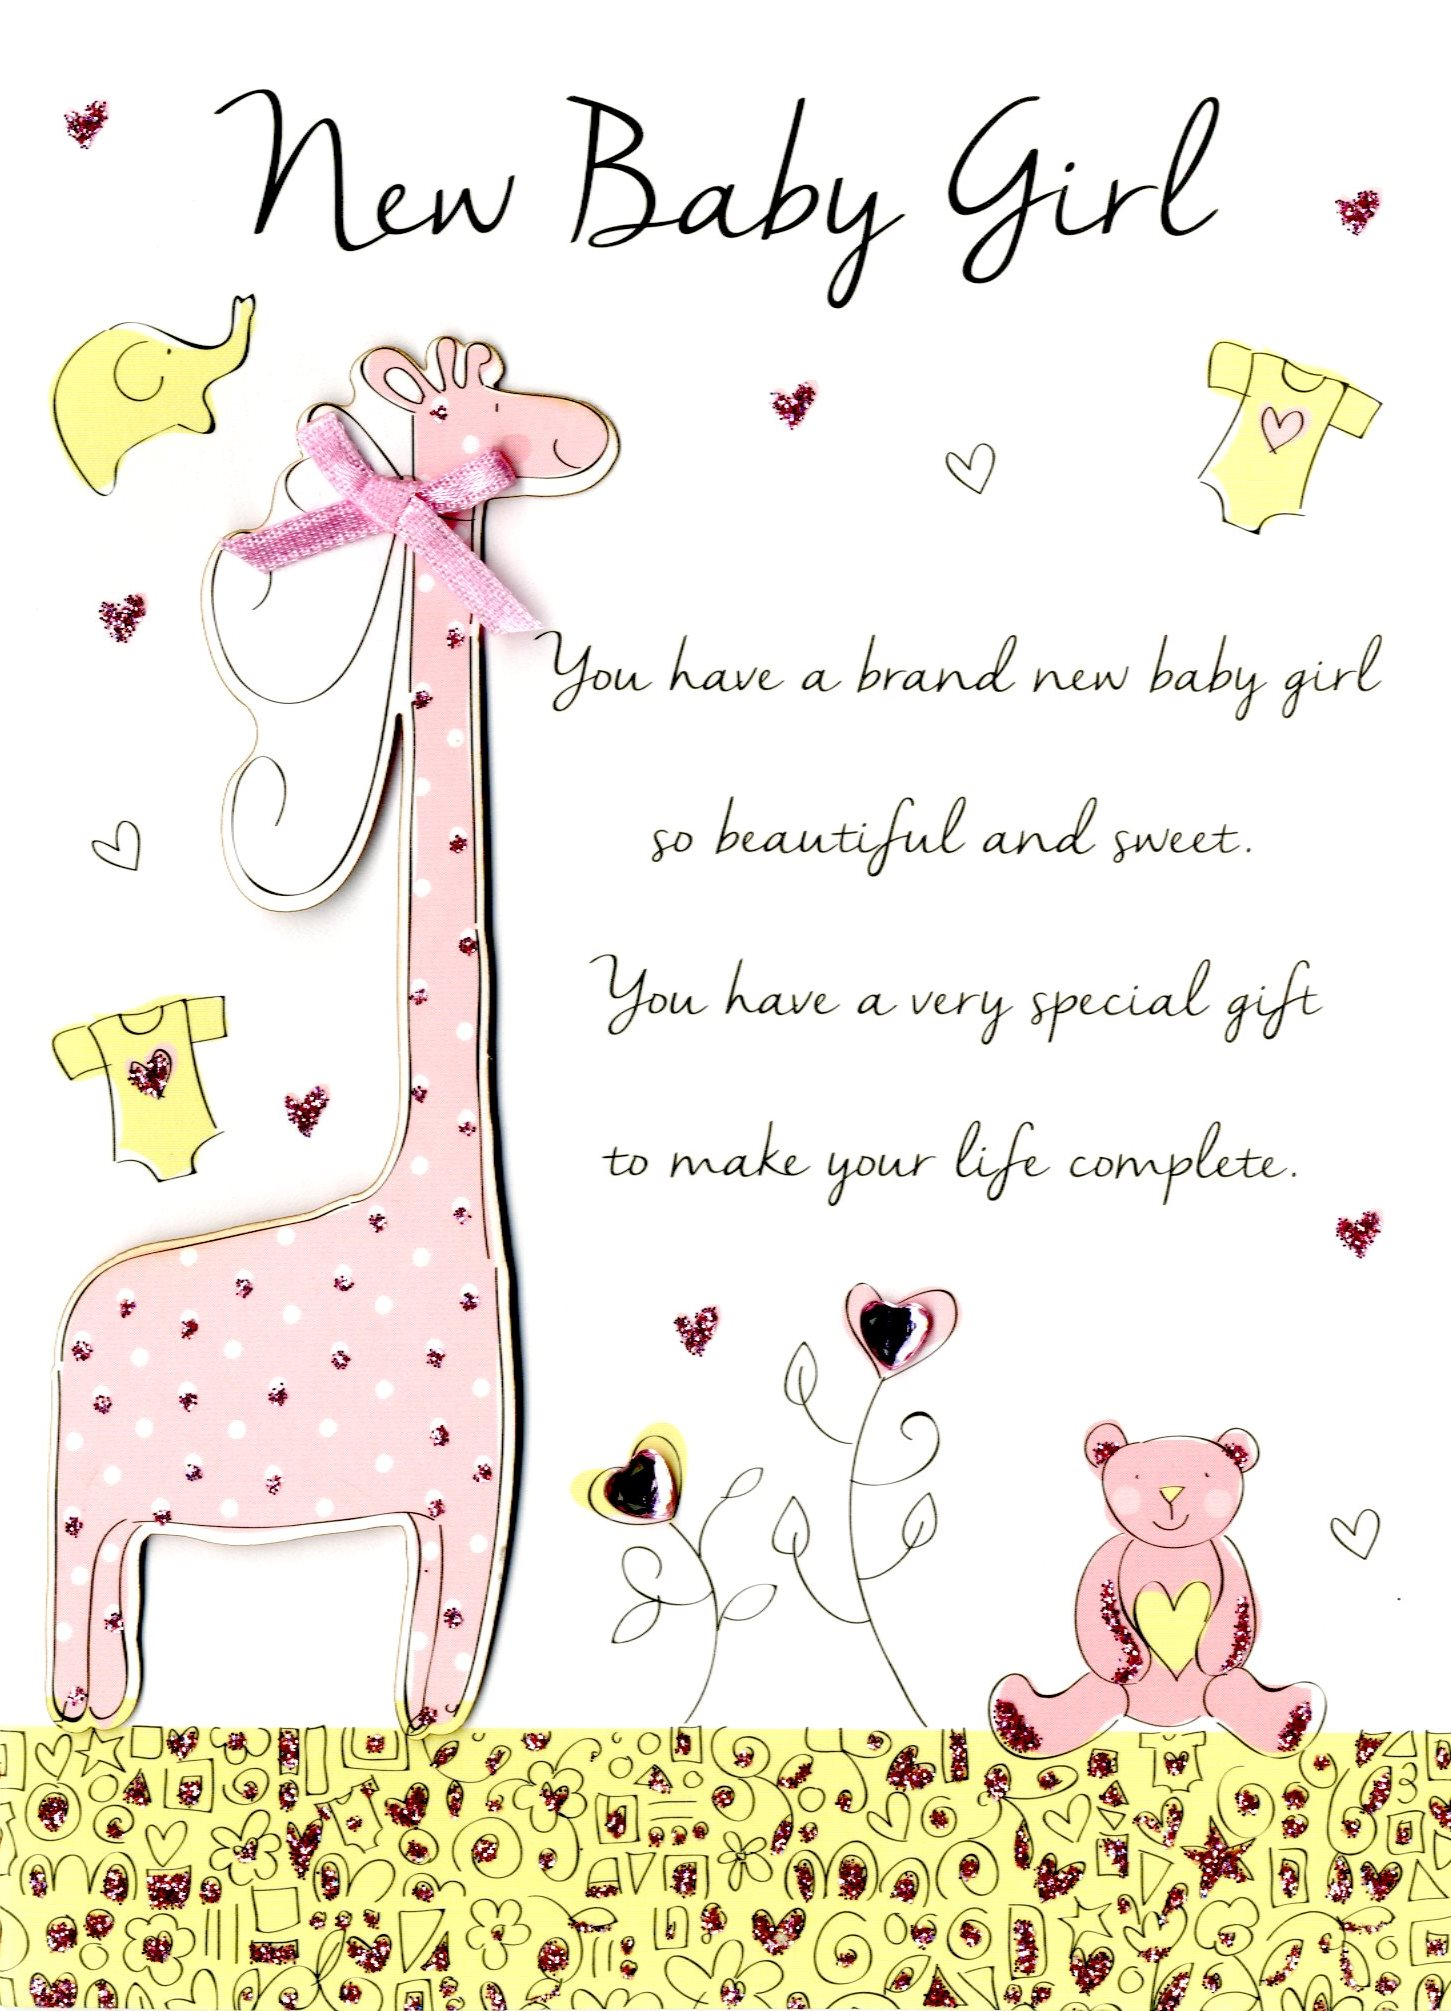 Catchy New Baby Girl Congratulations Greeting Card New Baby Girl Congratulations Greeting Card Cards Love Kates Congratulations On Your Baby Girl Islamic Congratulations On Your Baby Girl Messages baby shower Congratulations On Your Baby Girl